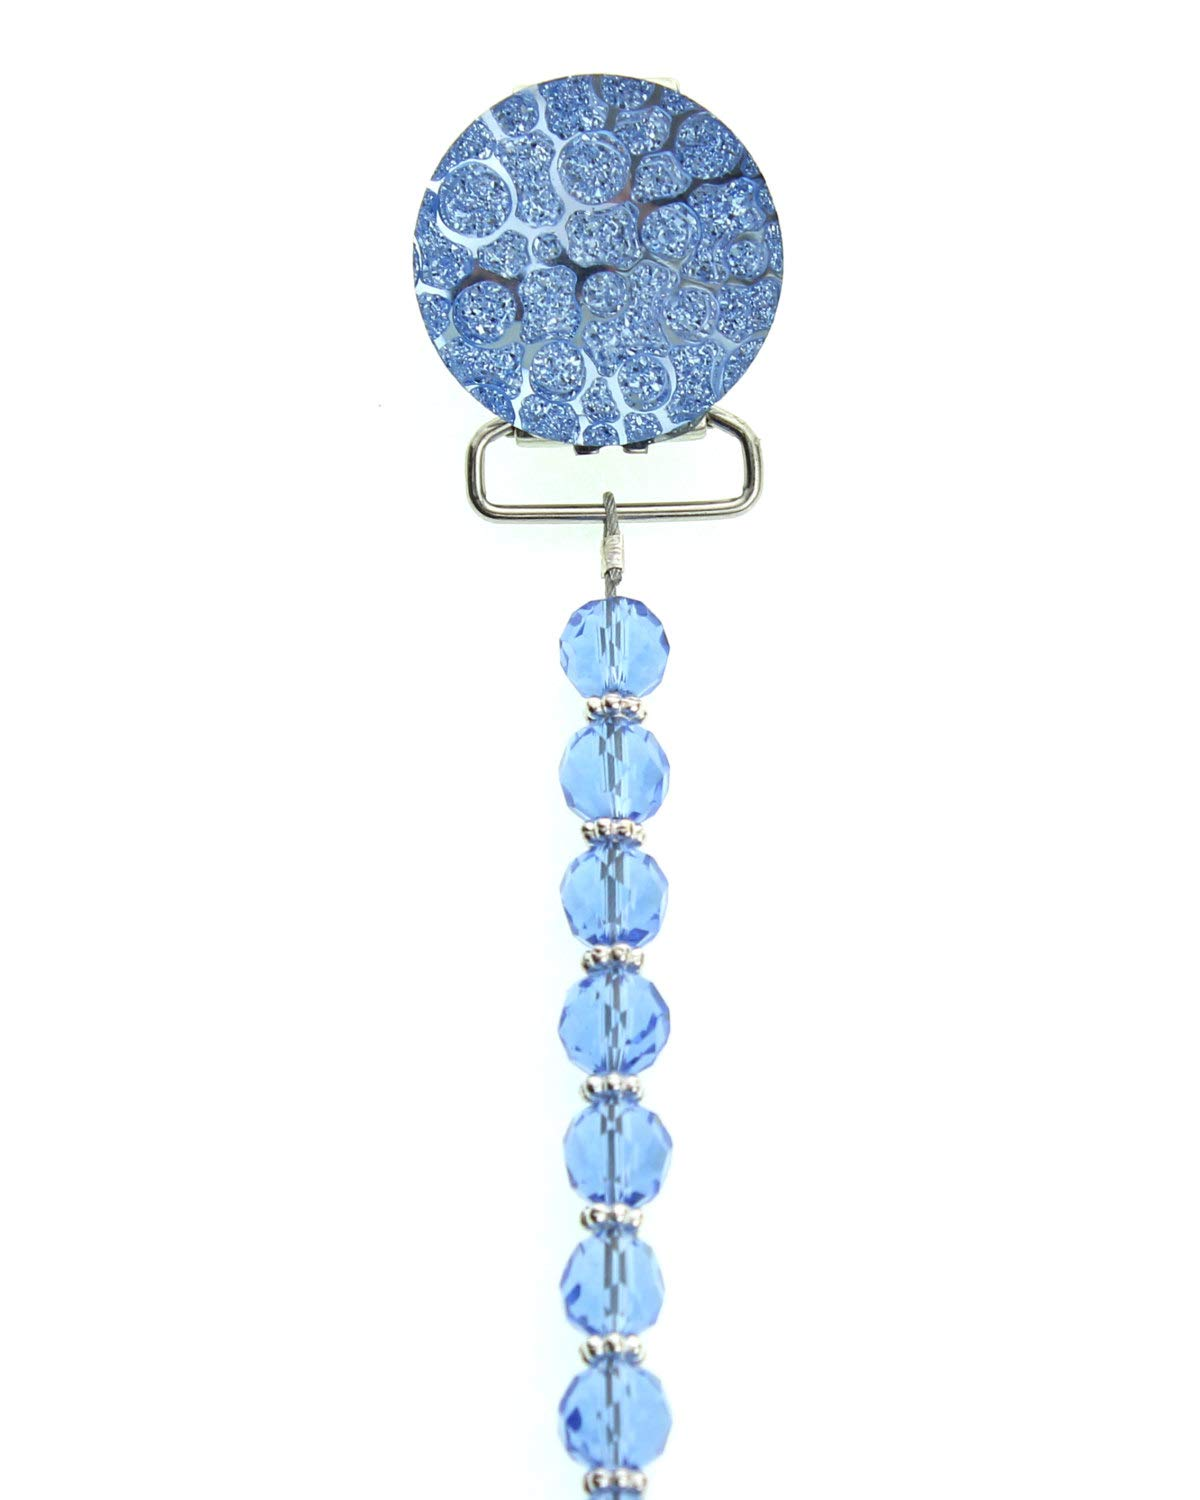 Luxury Swarovski Blue Crushed Crystal Handmade Unisex Baby Pacifier Clip 8 inch (CCRB) by Crystal Dream